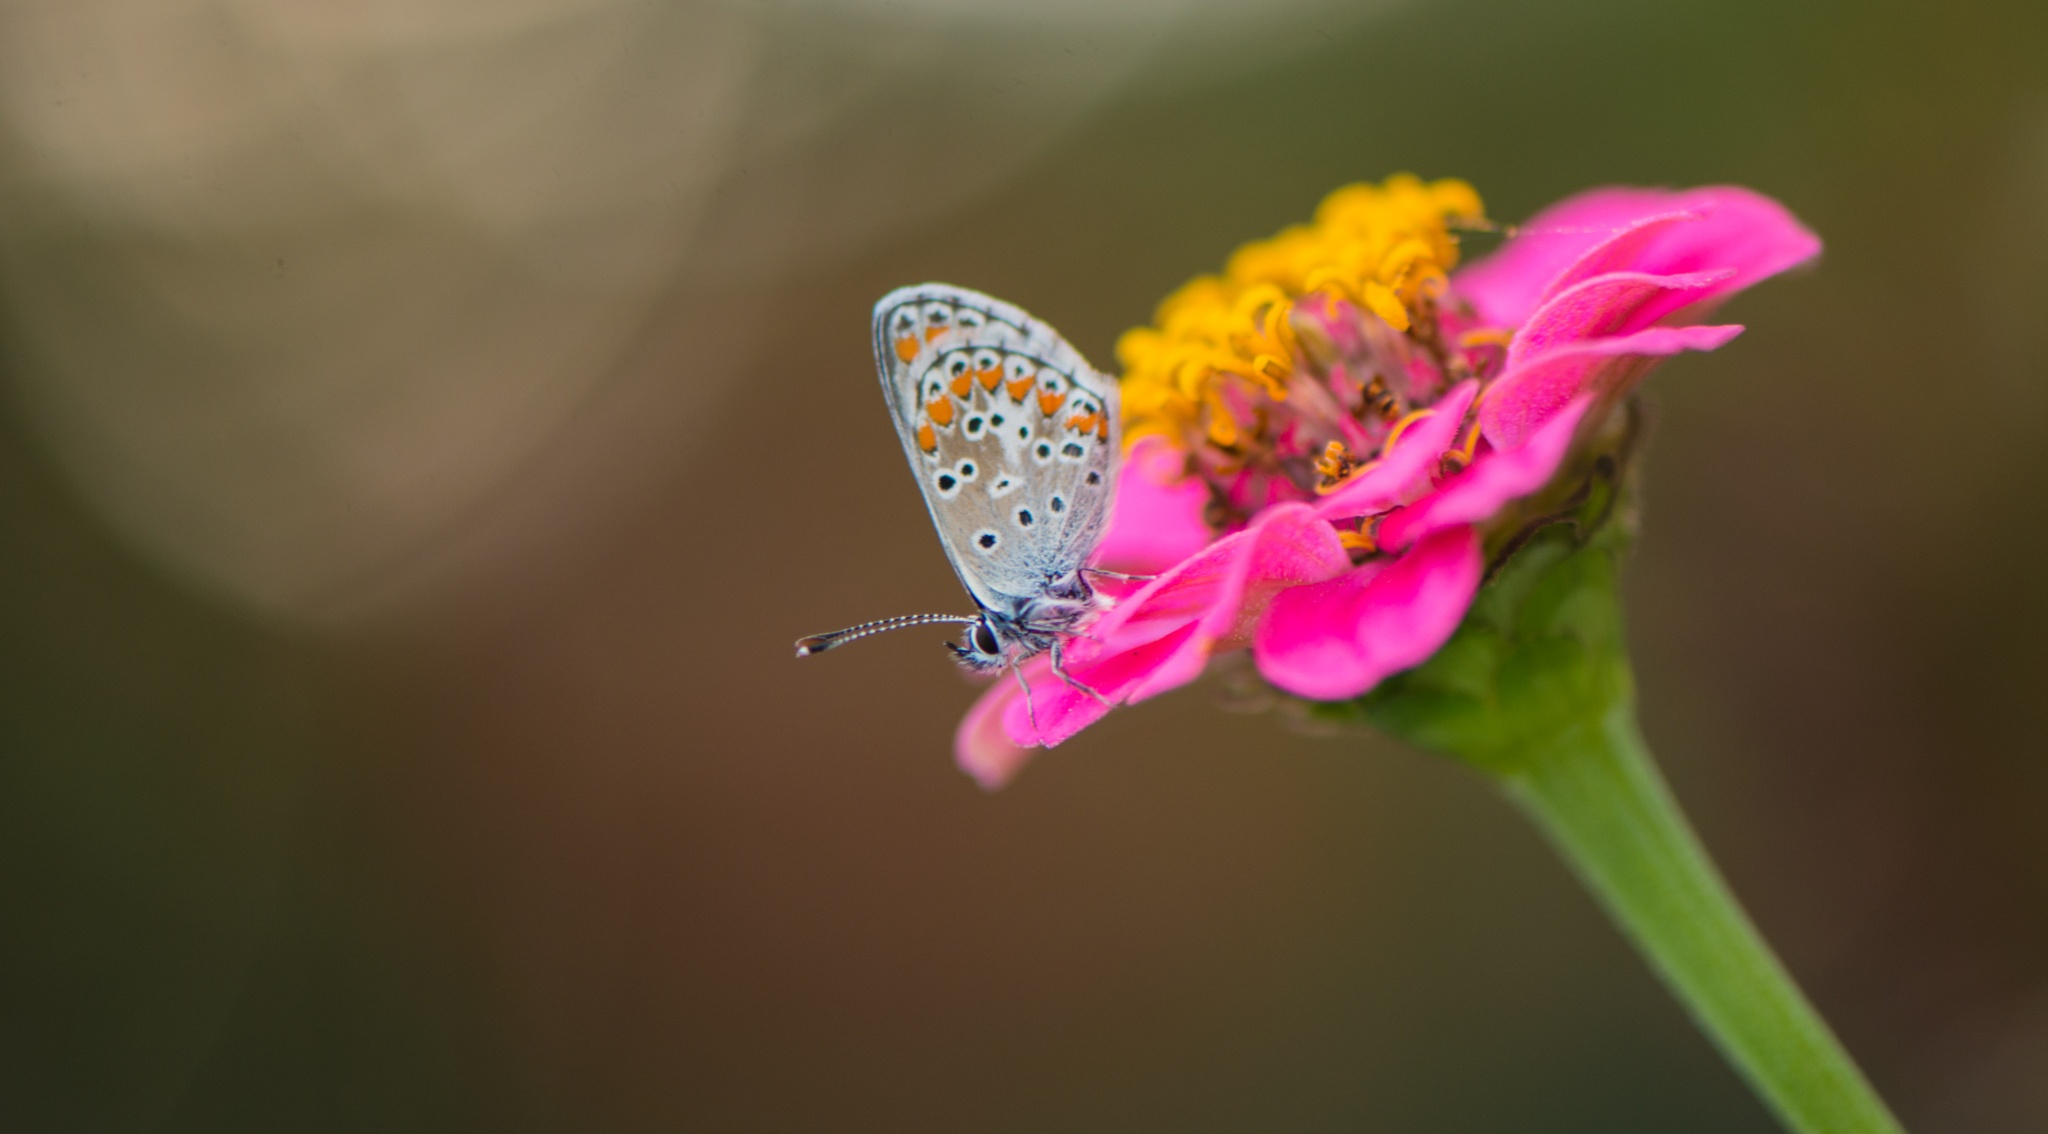 Waiting for the Autumn by Frederic Gombert